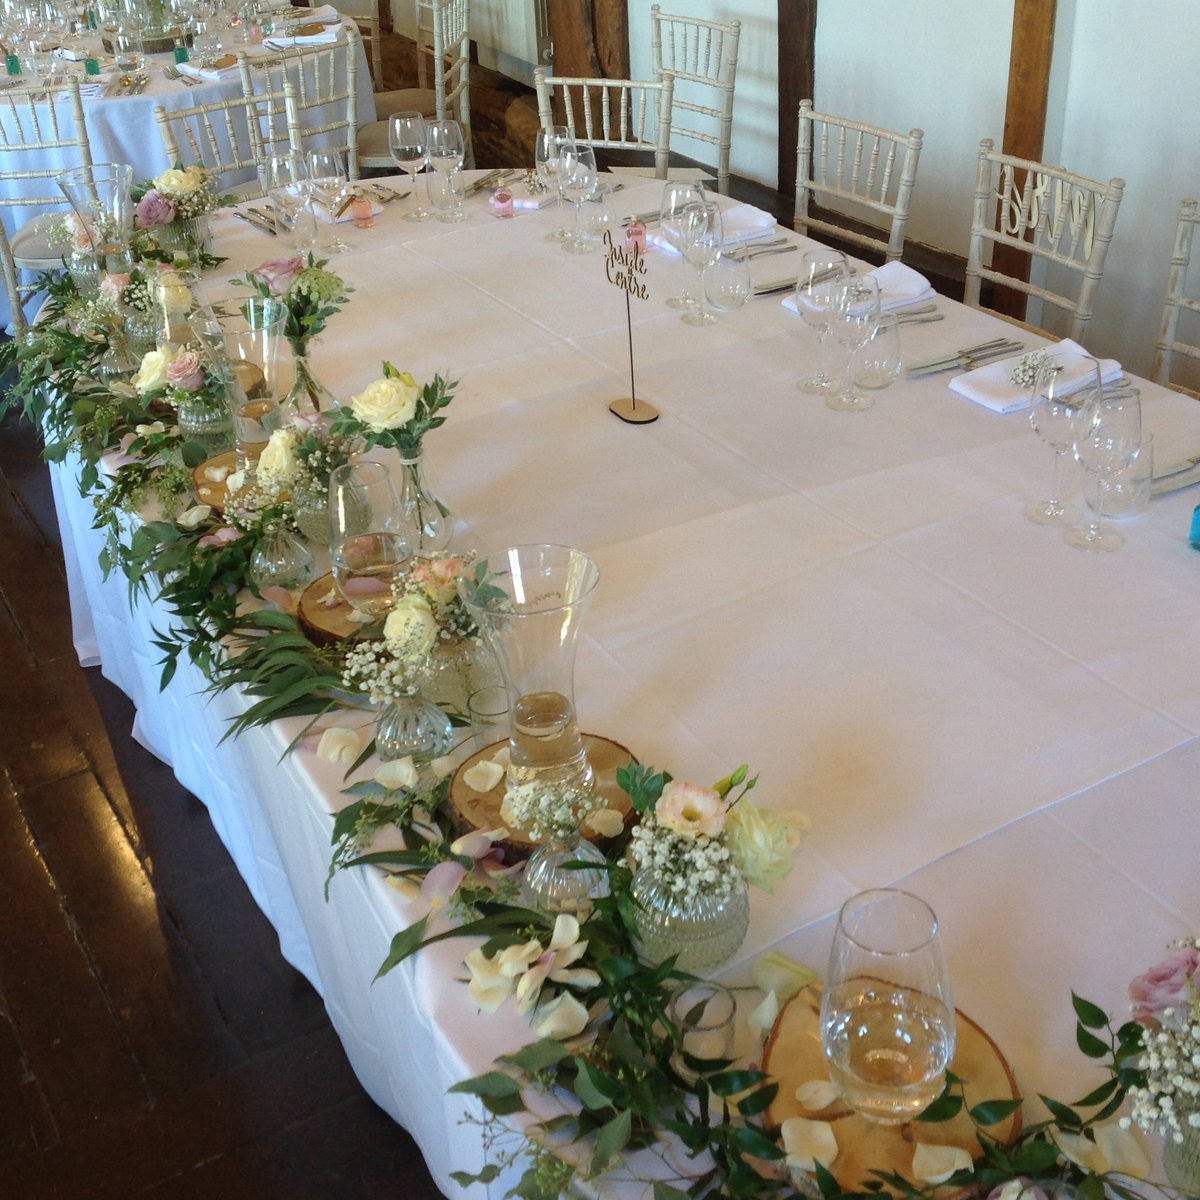 More on our lovely #wedding here last Saturday @loseleypark @loseleyevents with gorgeous posies lining the #toptable and vases ready and waiting for the #bridesmaidbouquets to arrive!